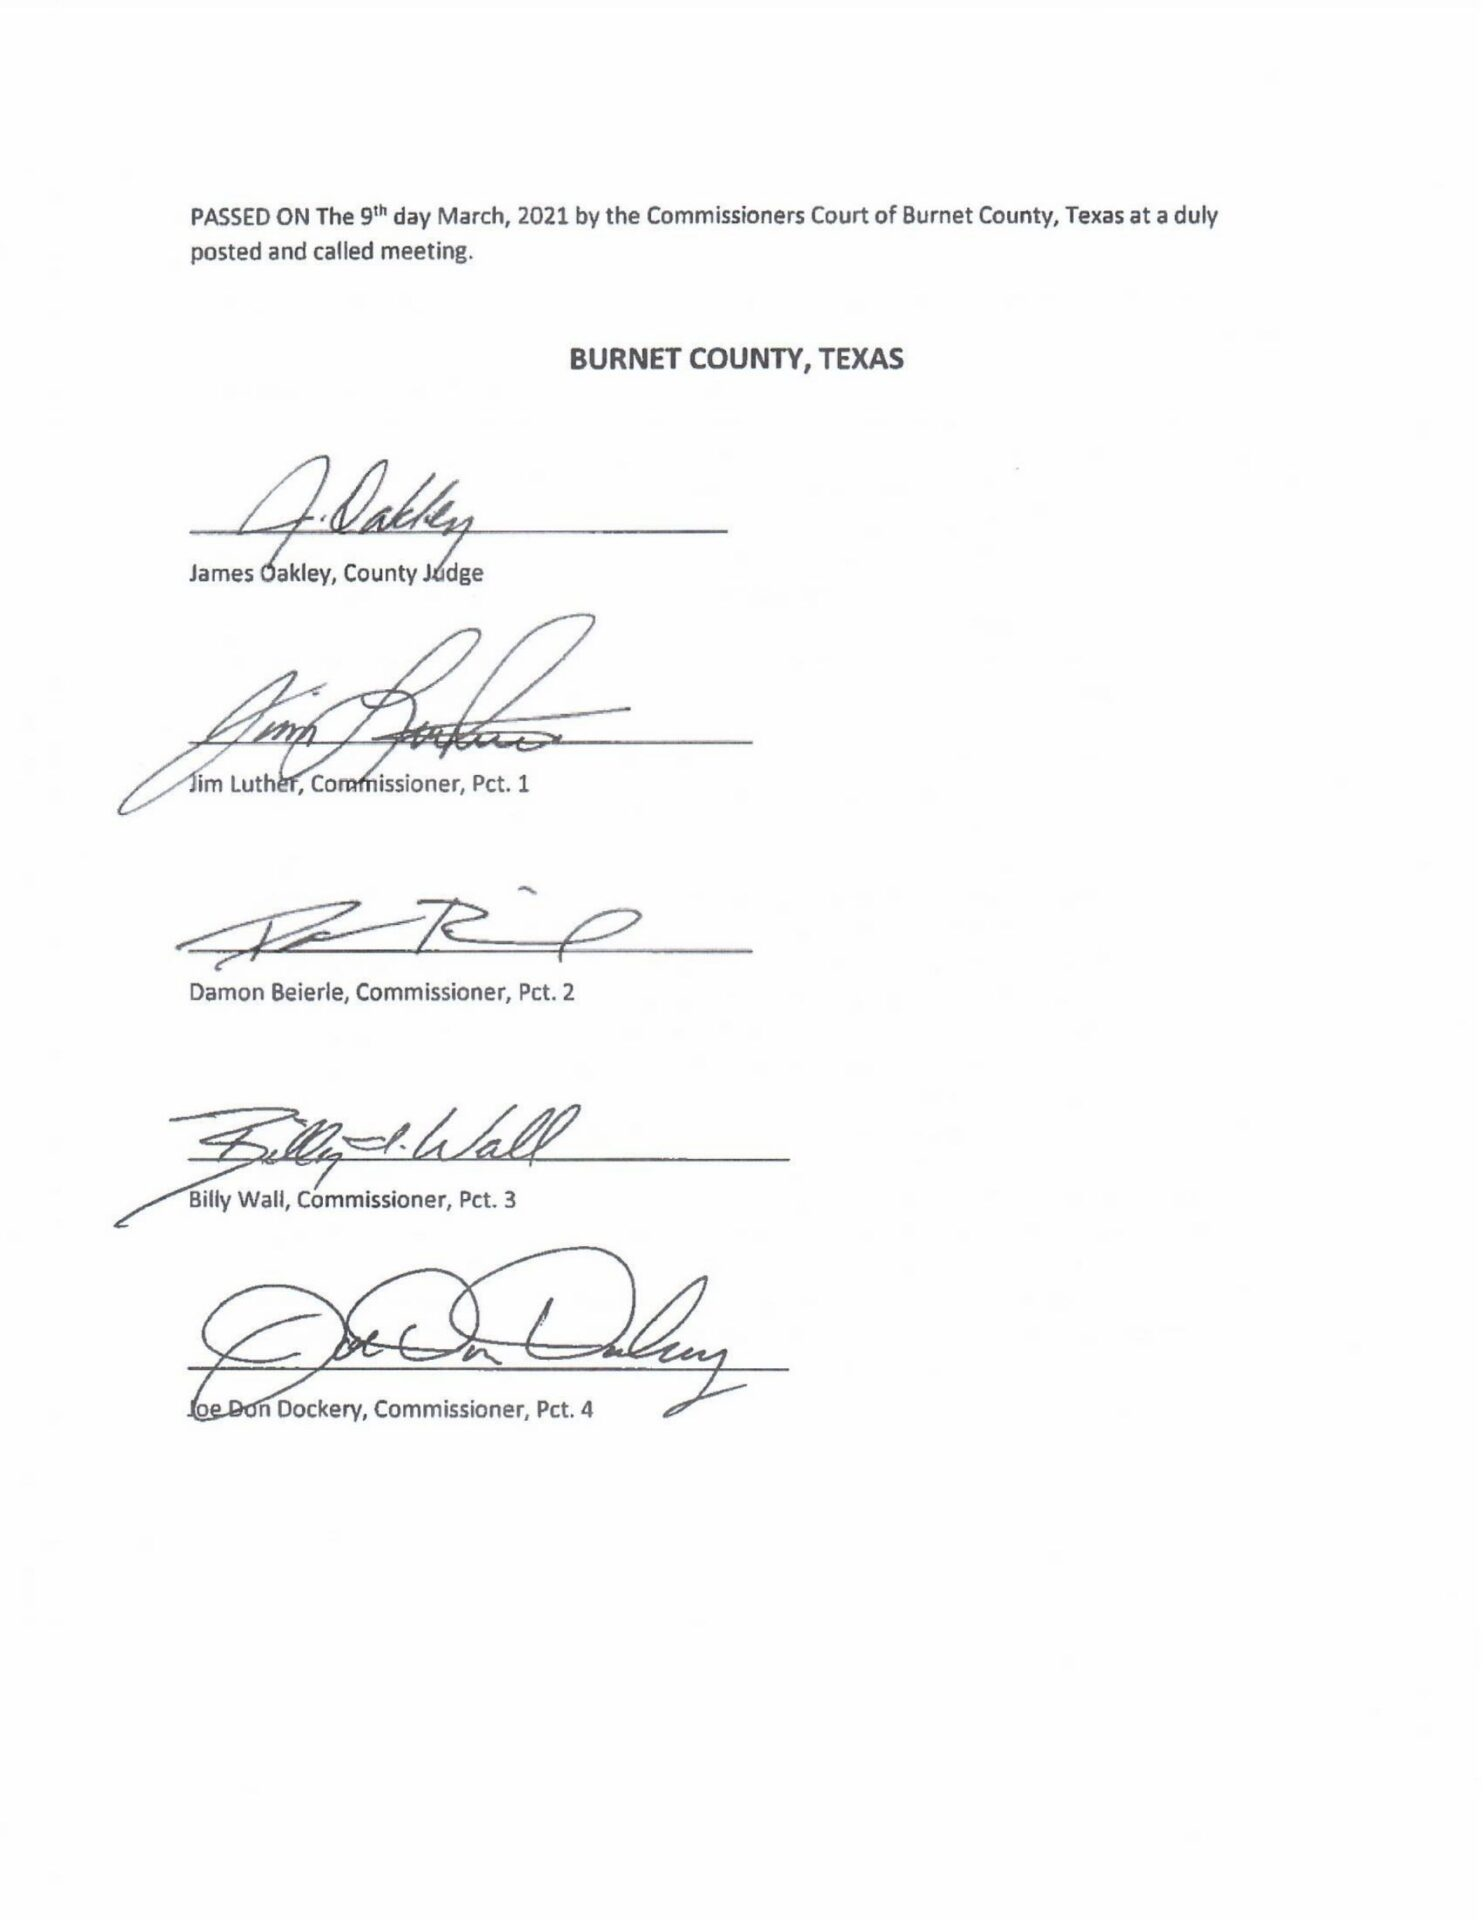 Burnet County Texas 2A Support Resolution PG-4